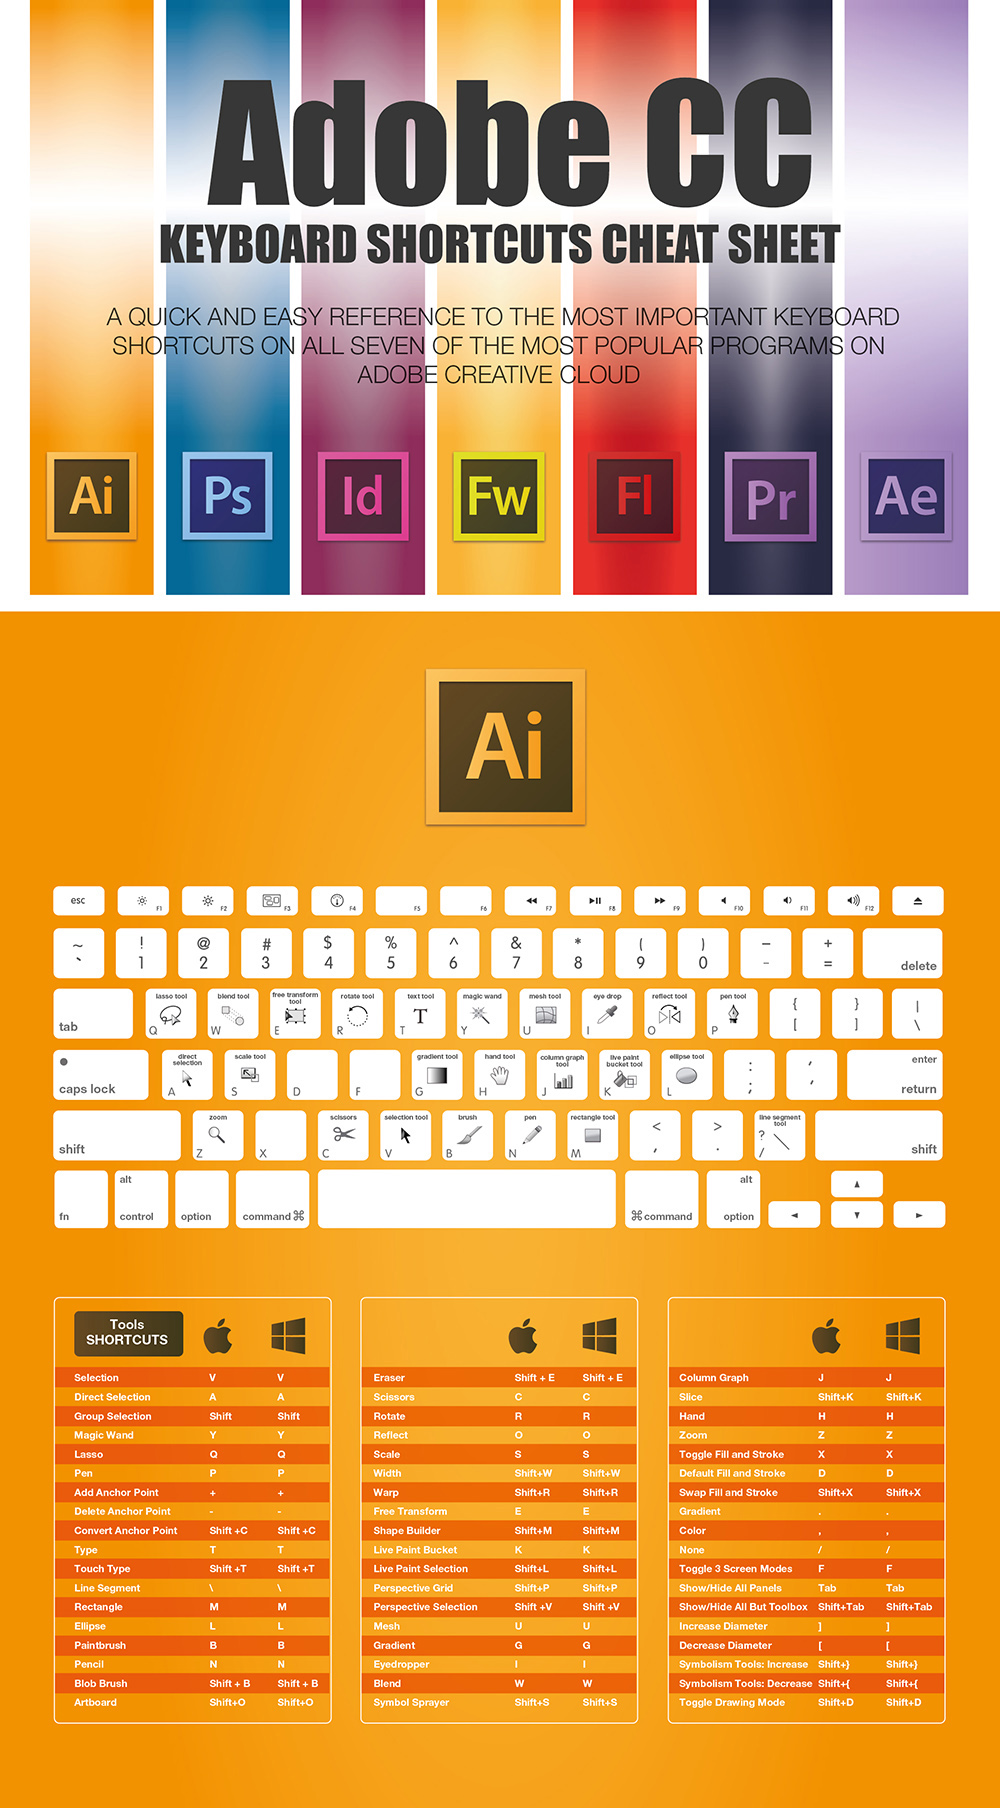 The Complete Adobe Illustrator CC Keyboard Shortcuts For Designers Guide 2015